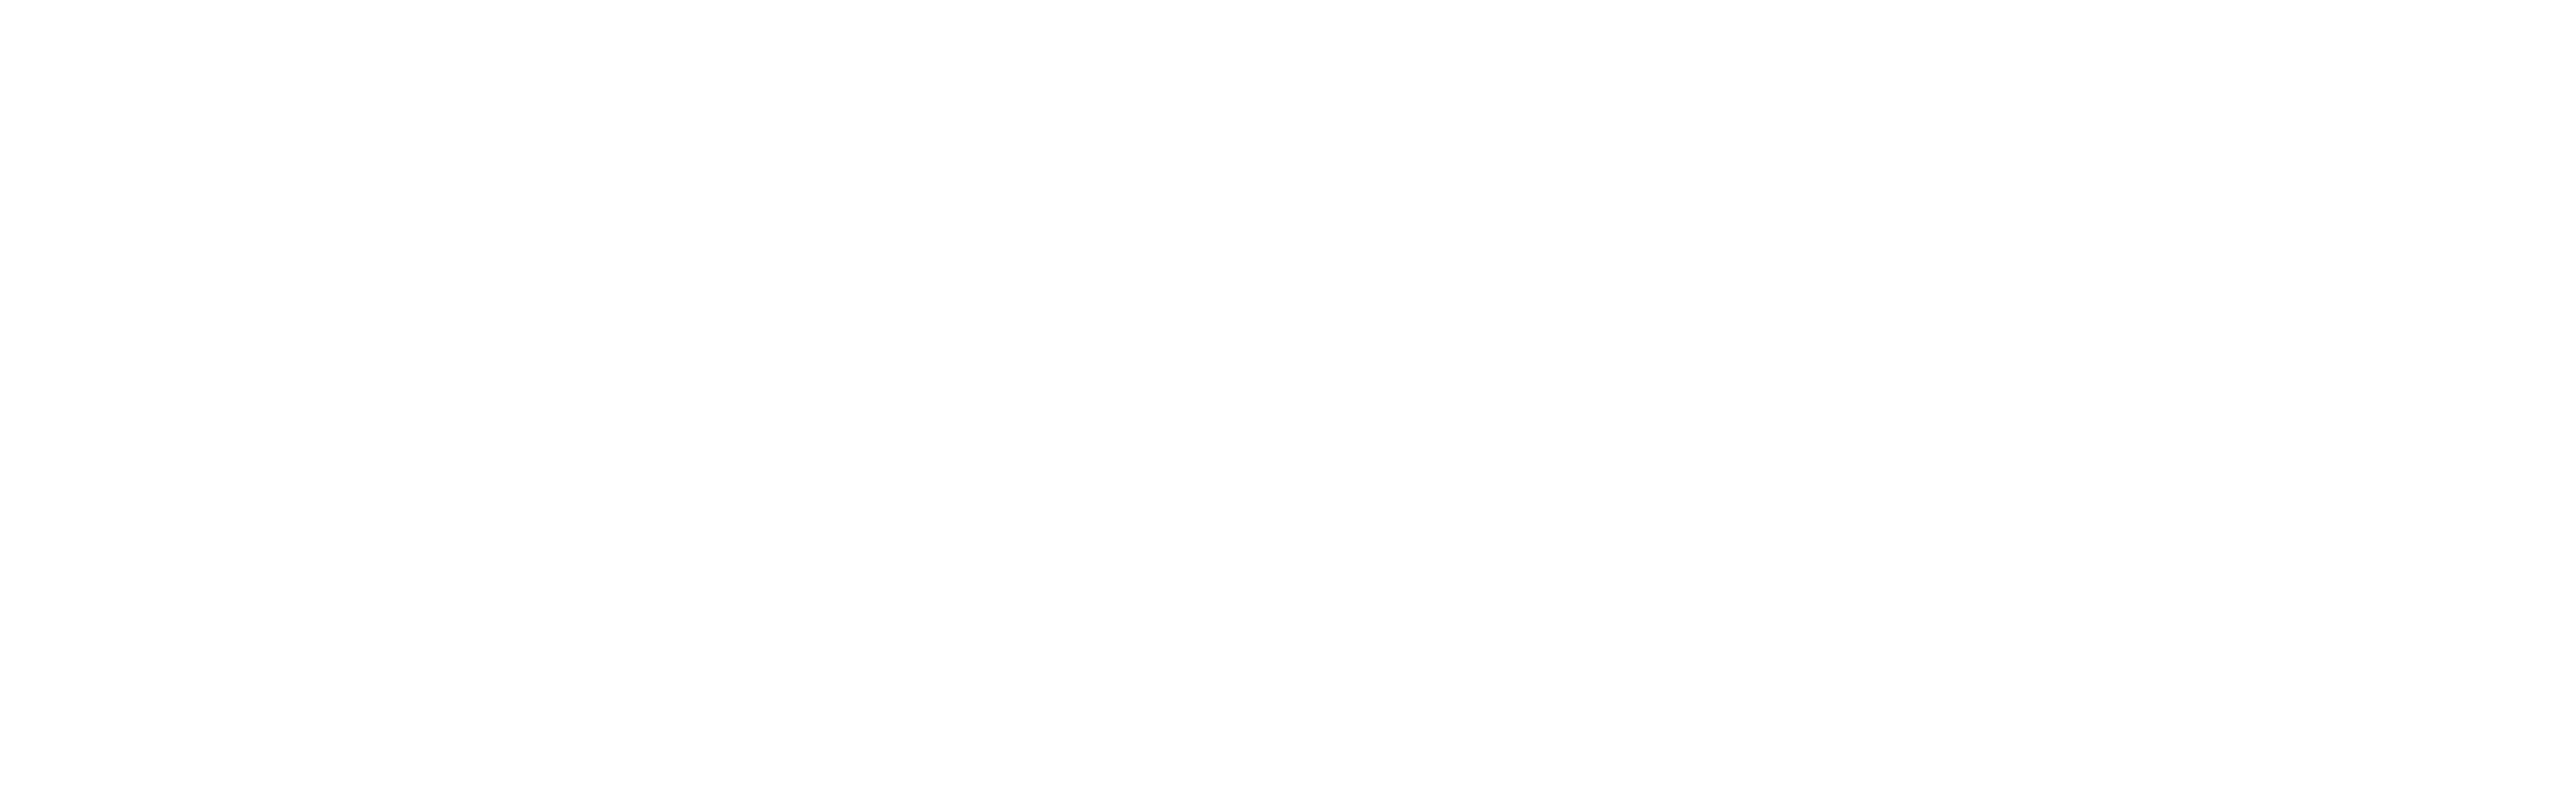 logo Augenblick in weiss